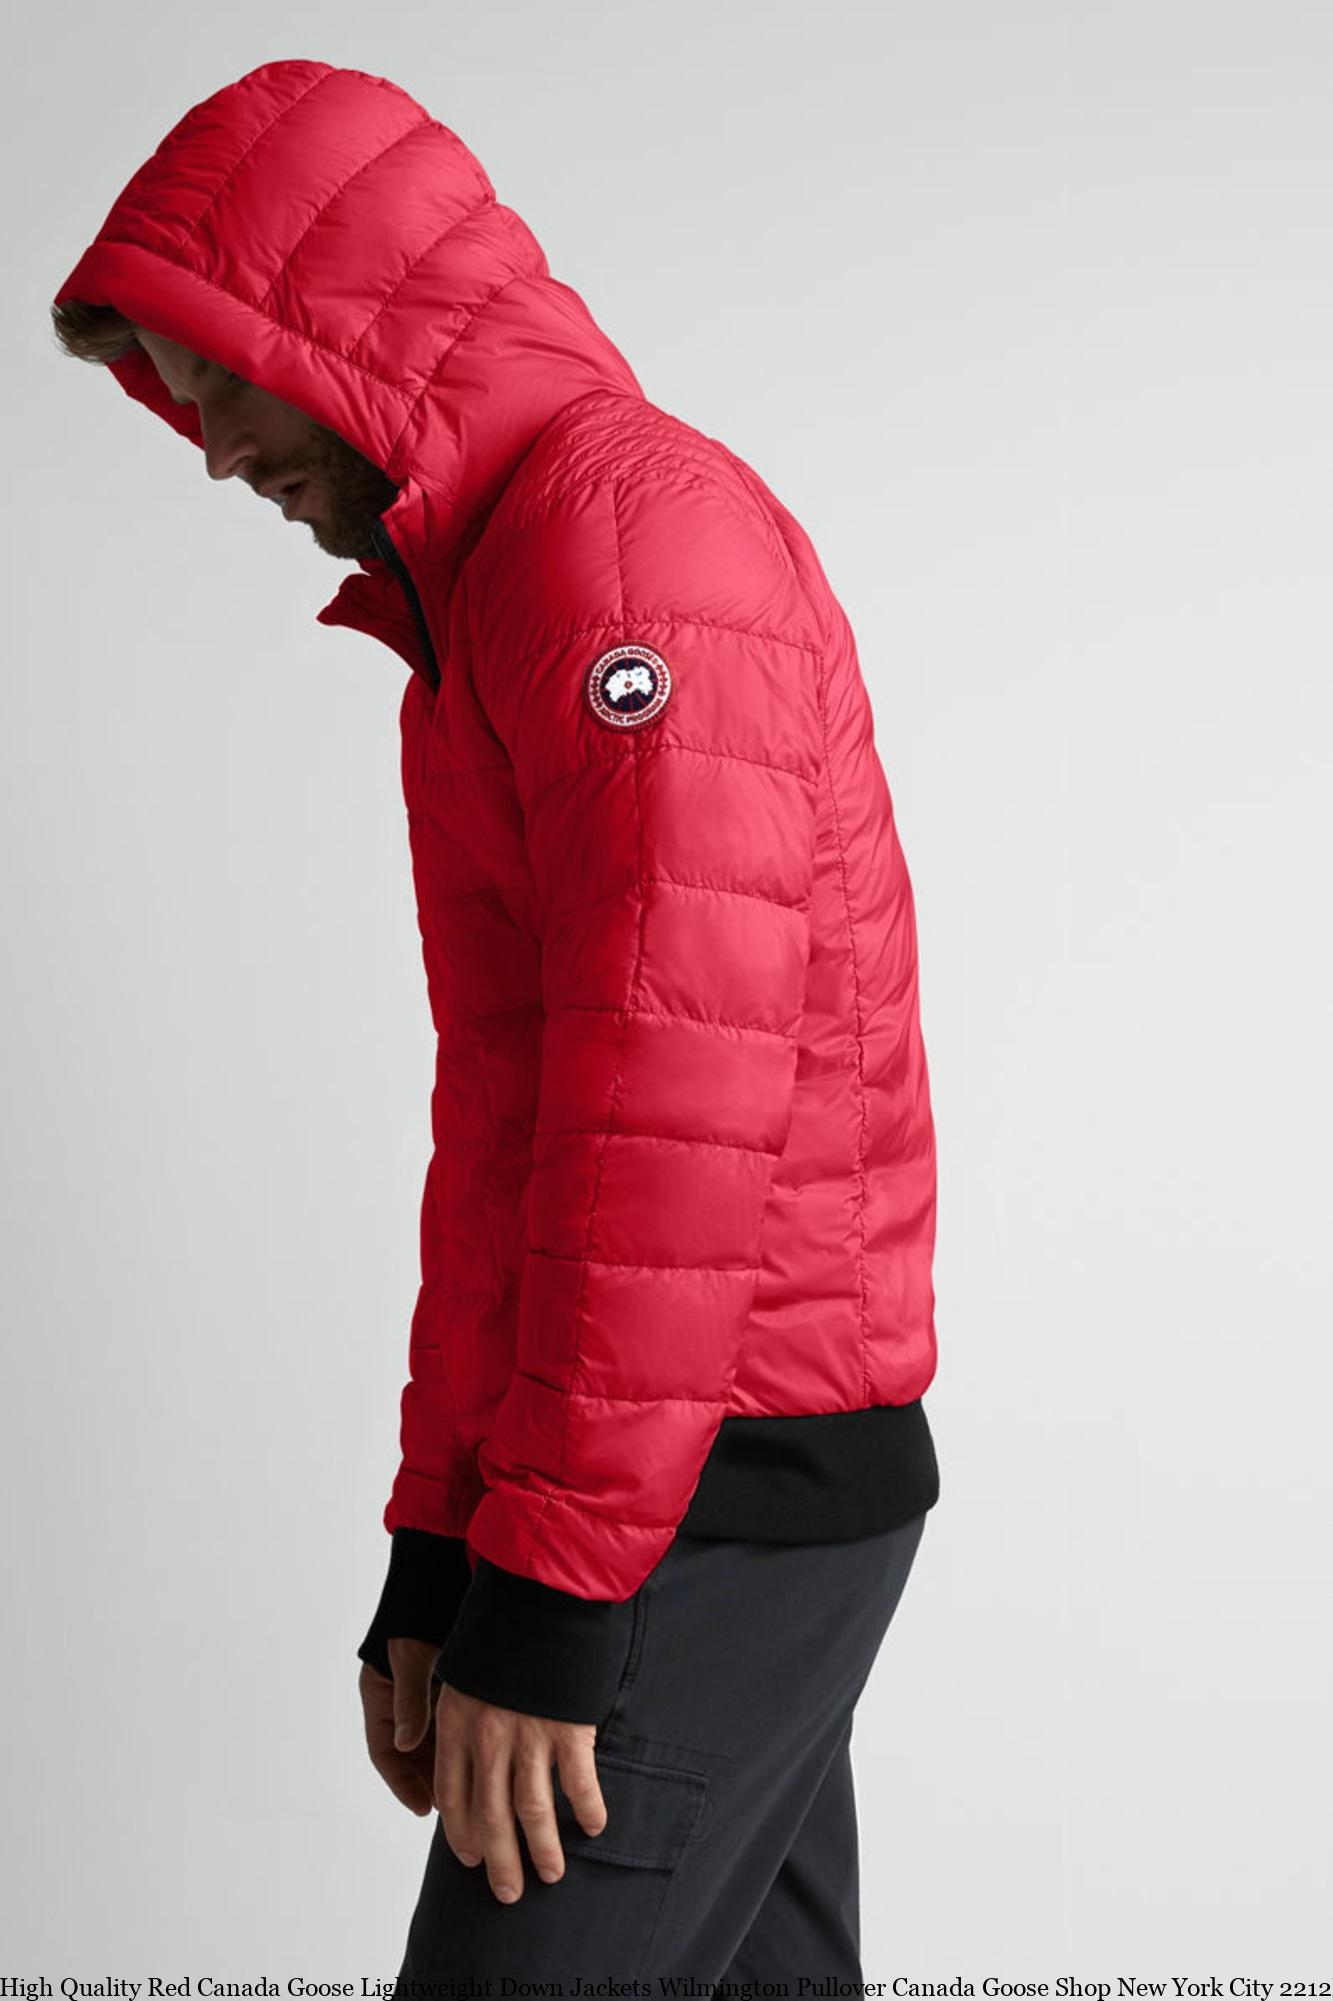 9204f399a3e High Quality Red Canada Goose Lightweight Down Jackets Wilmington Pullover Canada  Goose Shop New York City 2212M